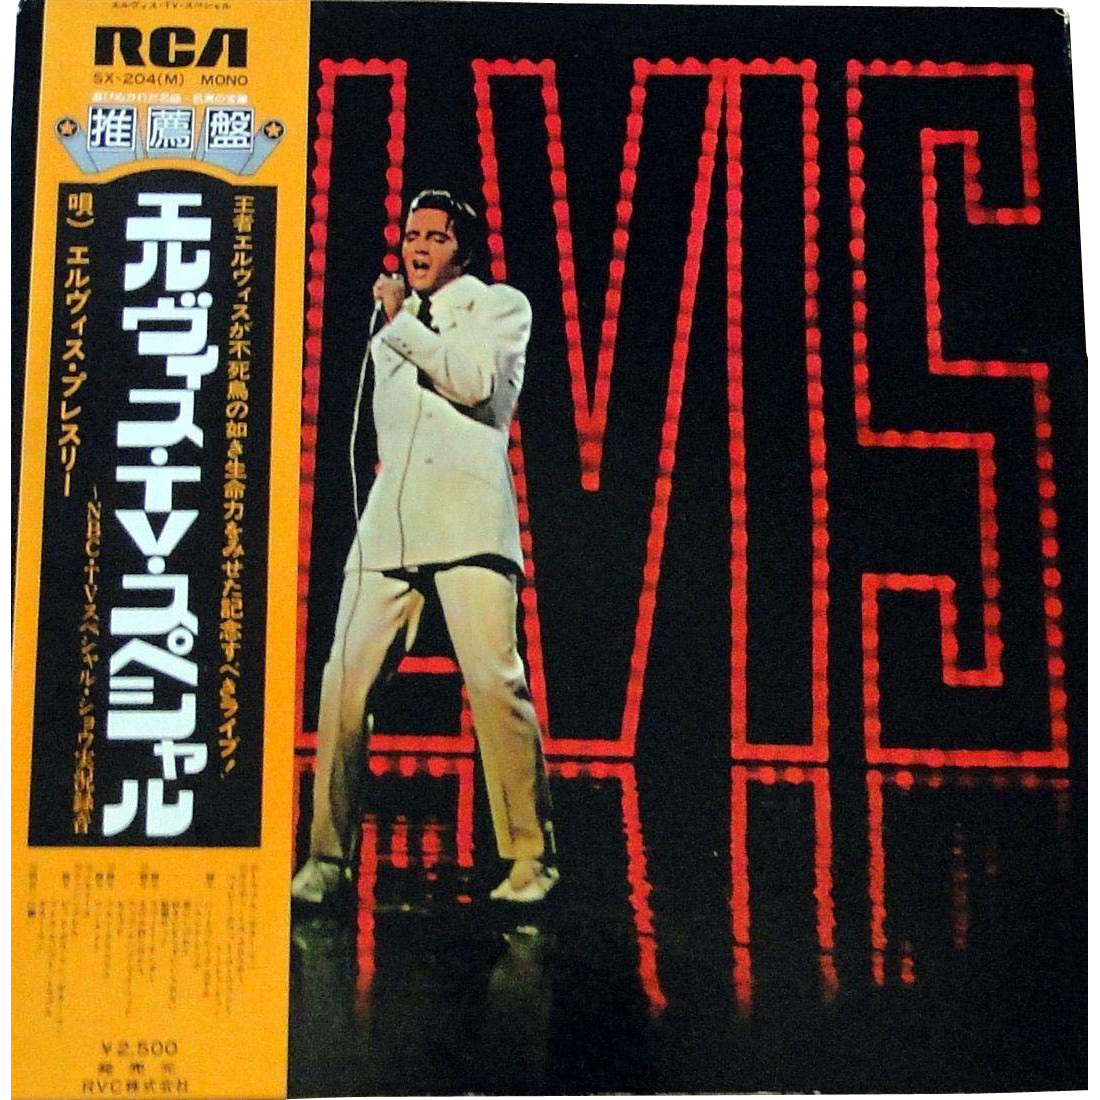 Vinyl Elvis Presley Album From Japan Rare Gatefold Cover